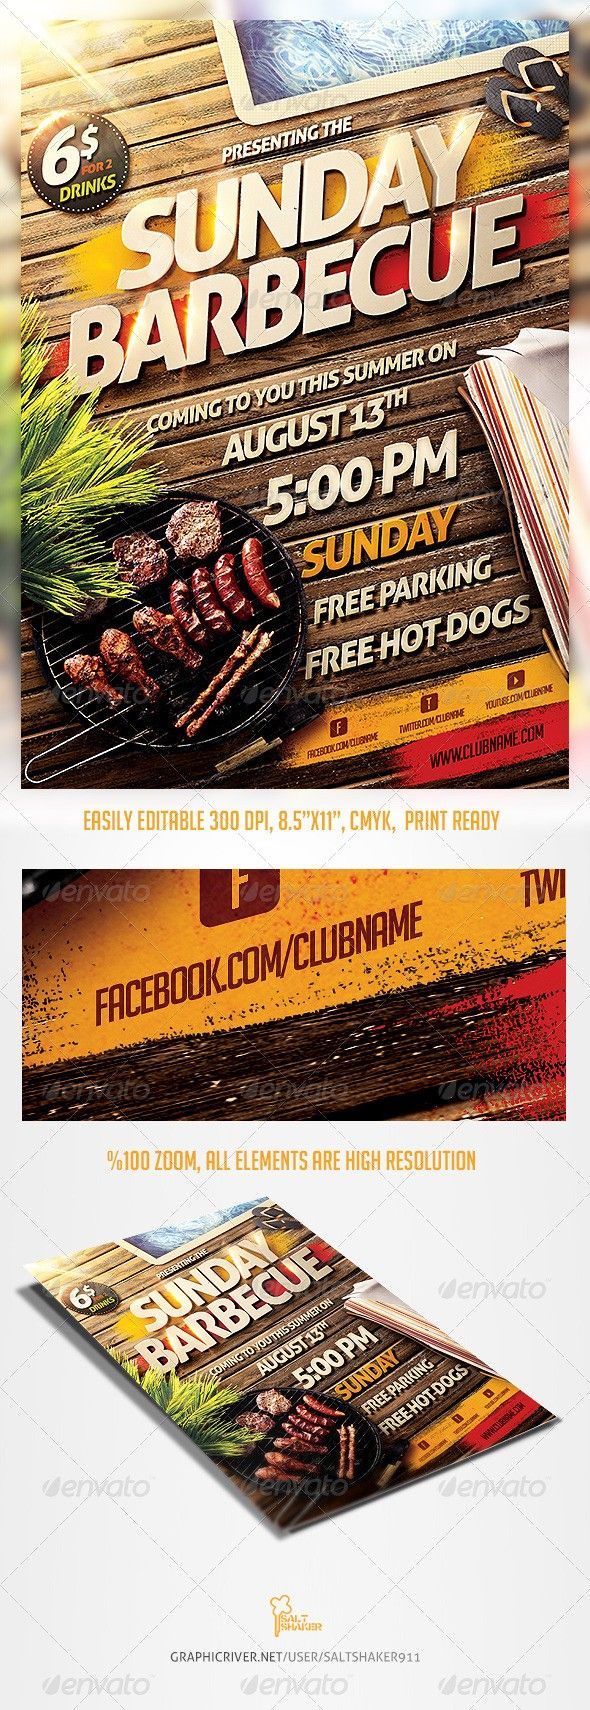 Barbecue Bbq Party Flyer Template Bbq Party Party Flyer Flyer Template